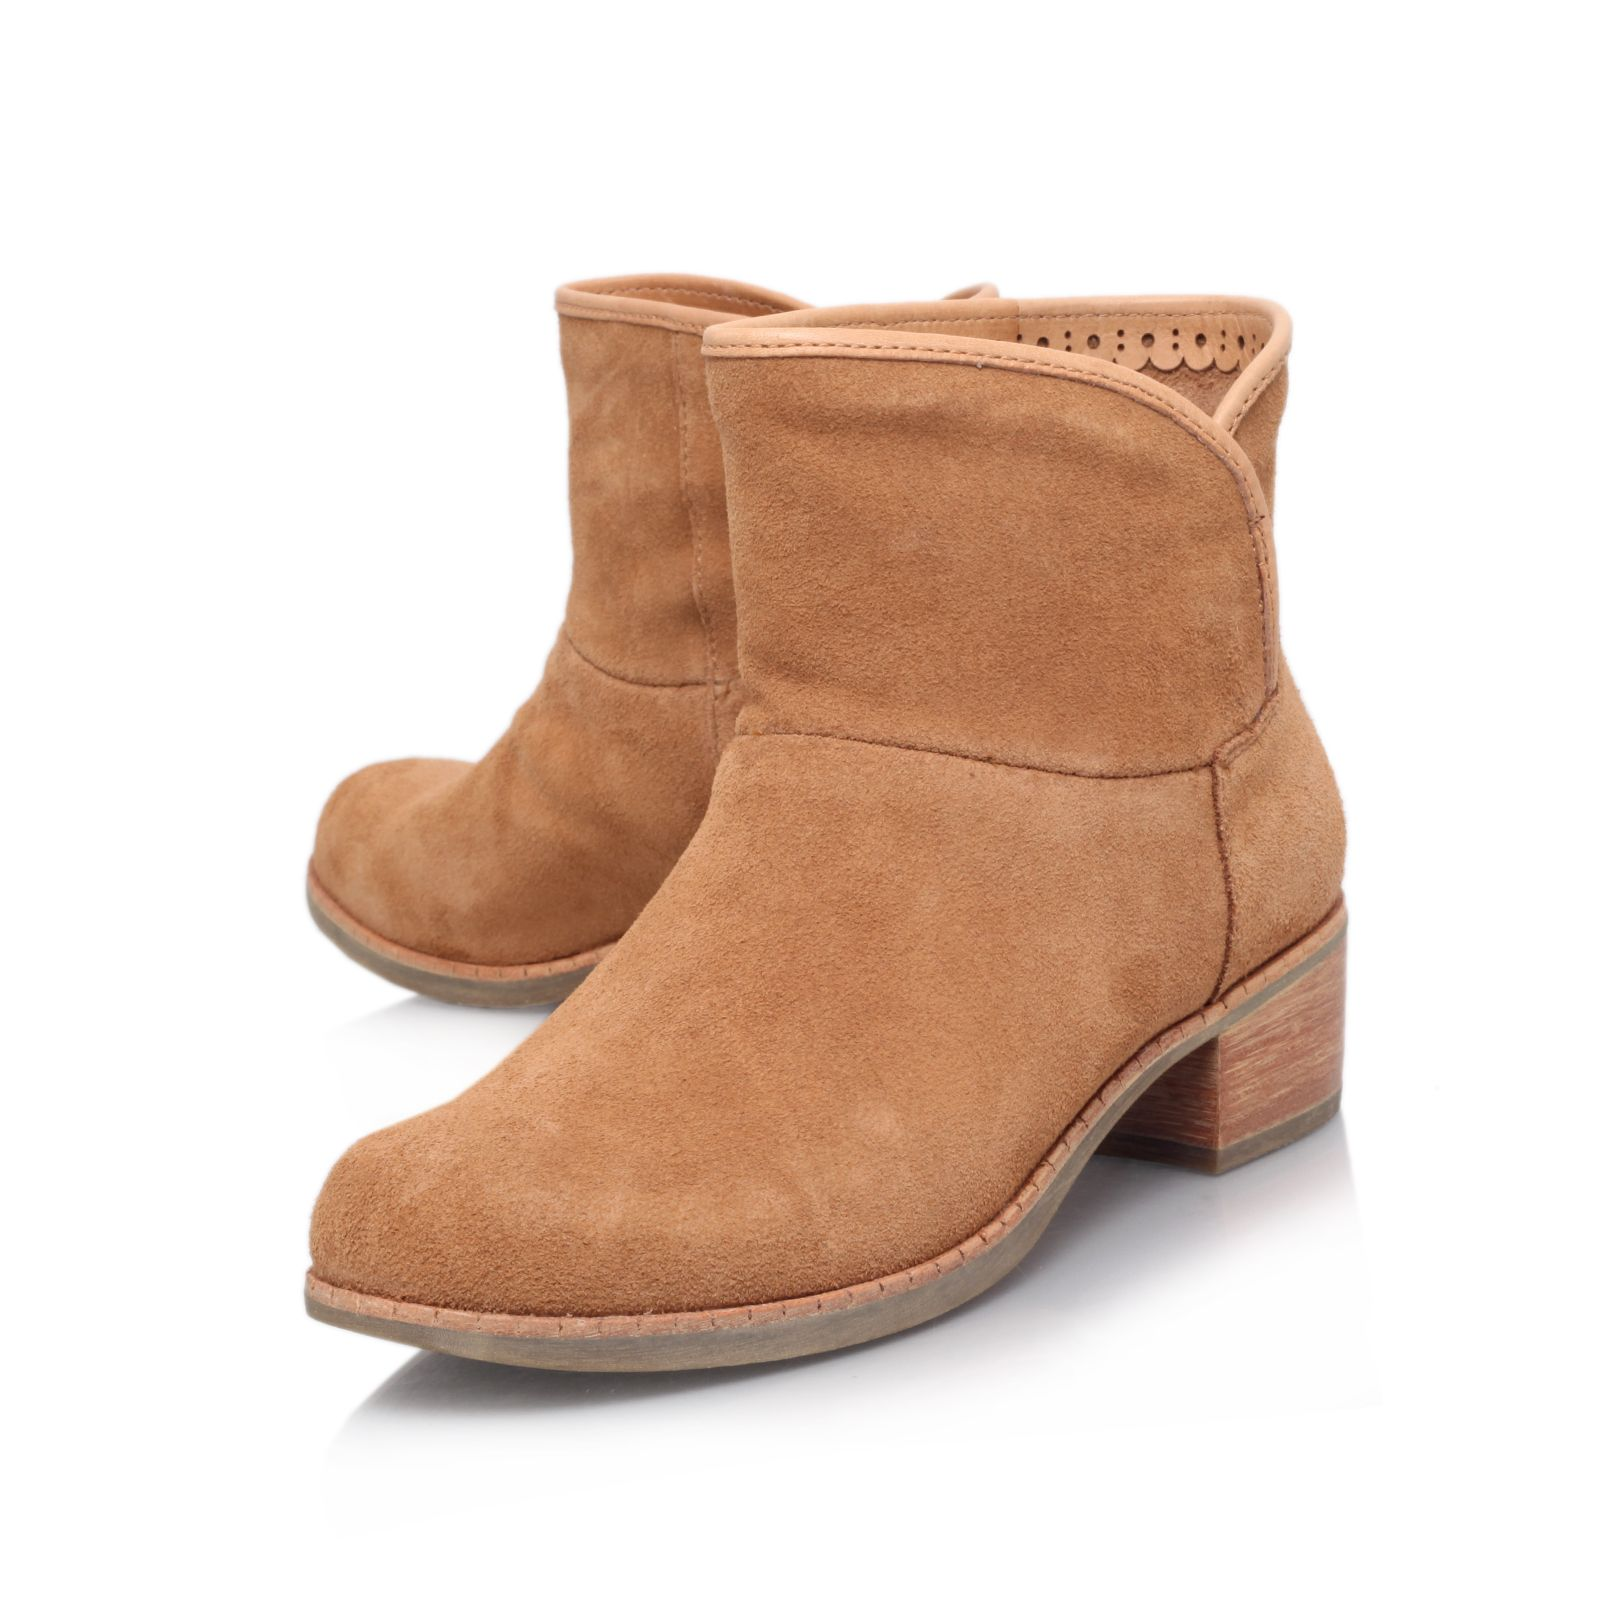 Darling low heel ankle boots